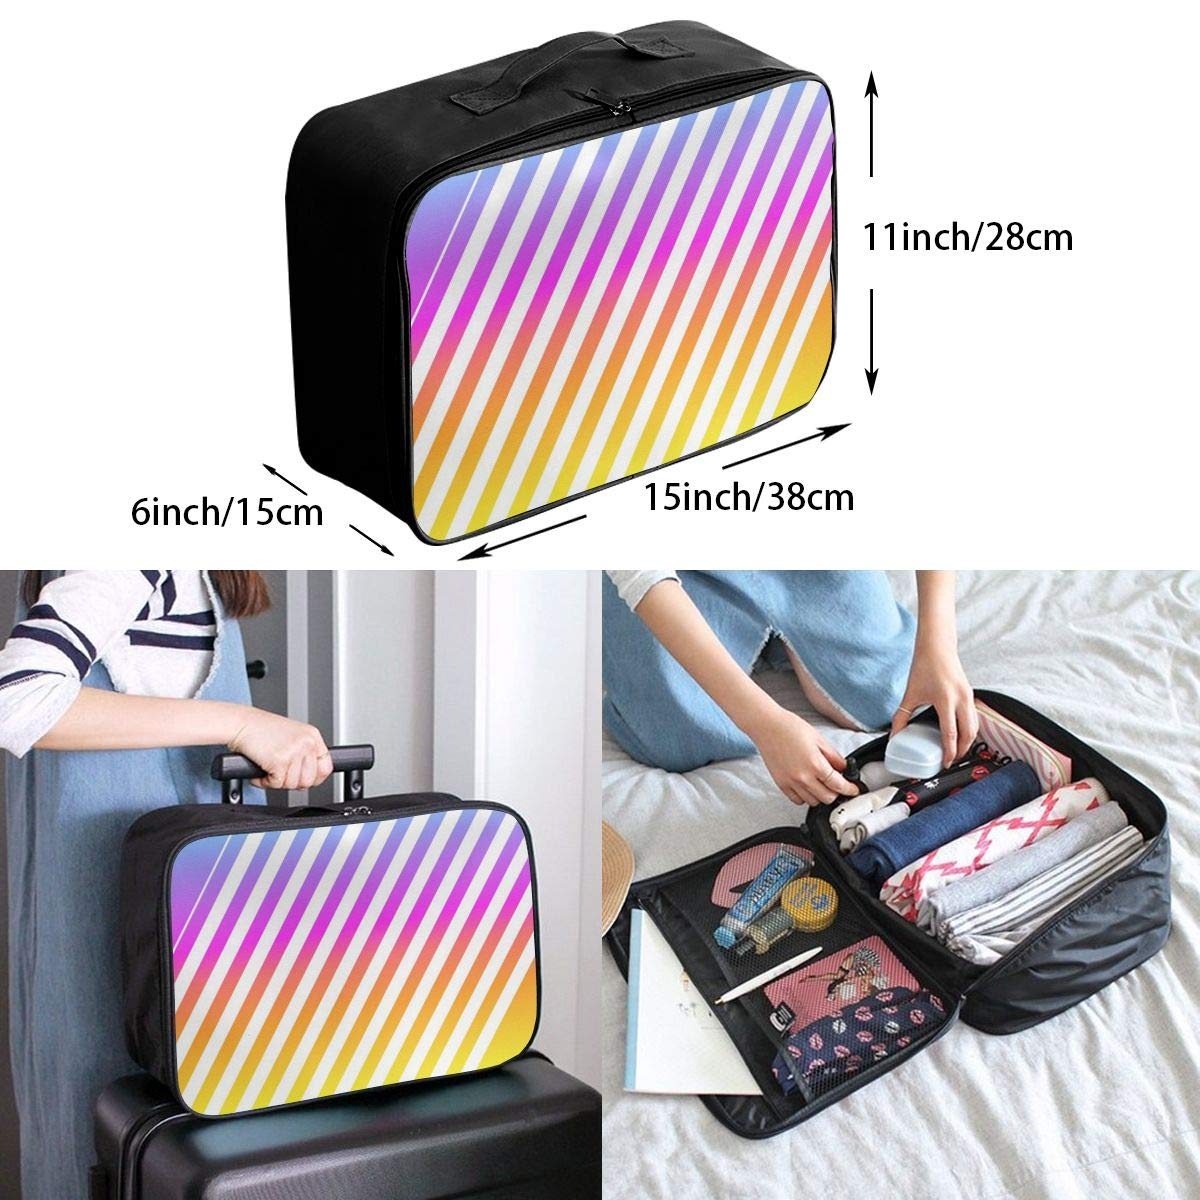 Abstract Line Travel Lightweight Waterproof Foldable Storage Carry Luggage Large Capacity Portable Luggage Bag Duffel Bag